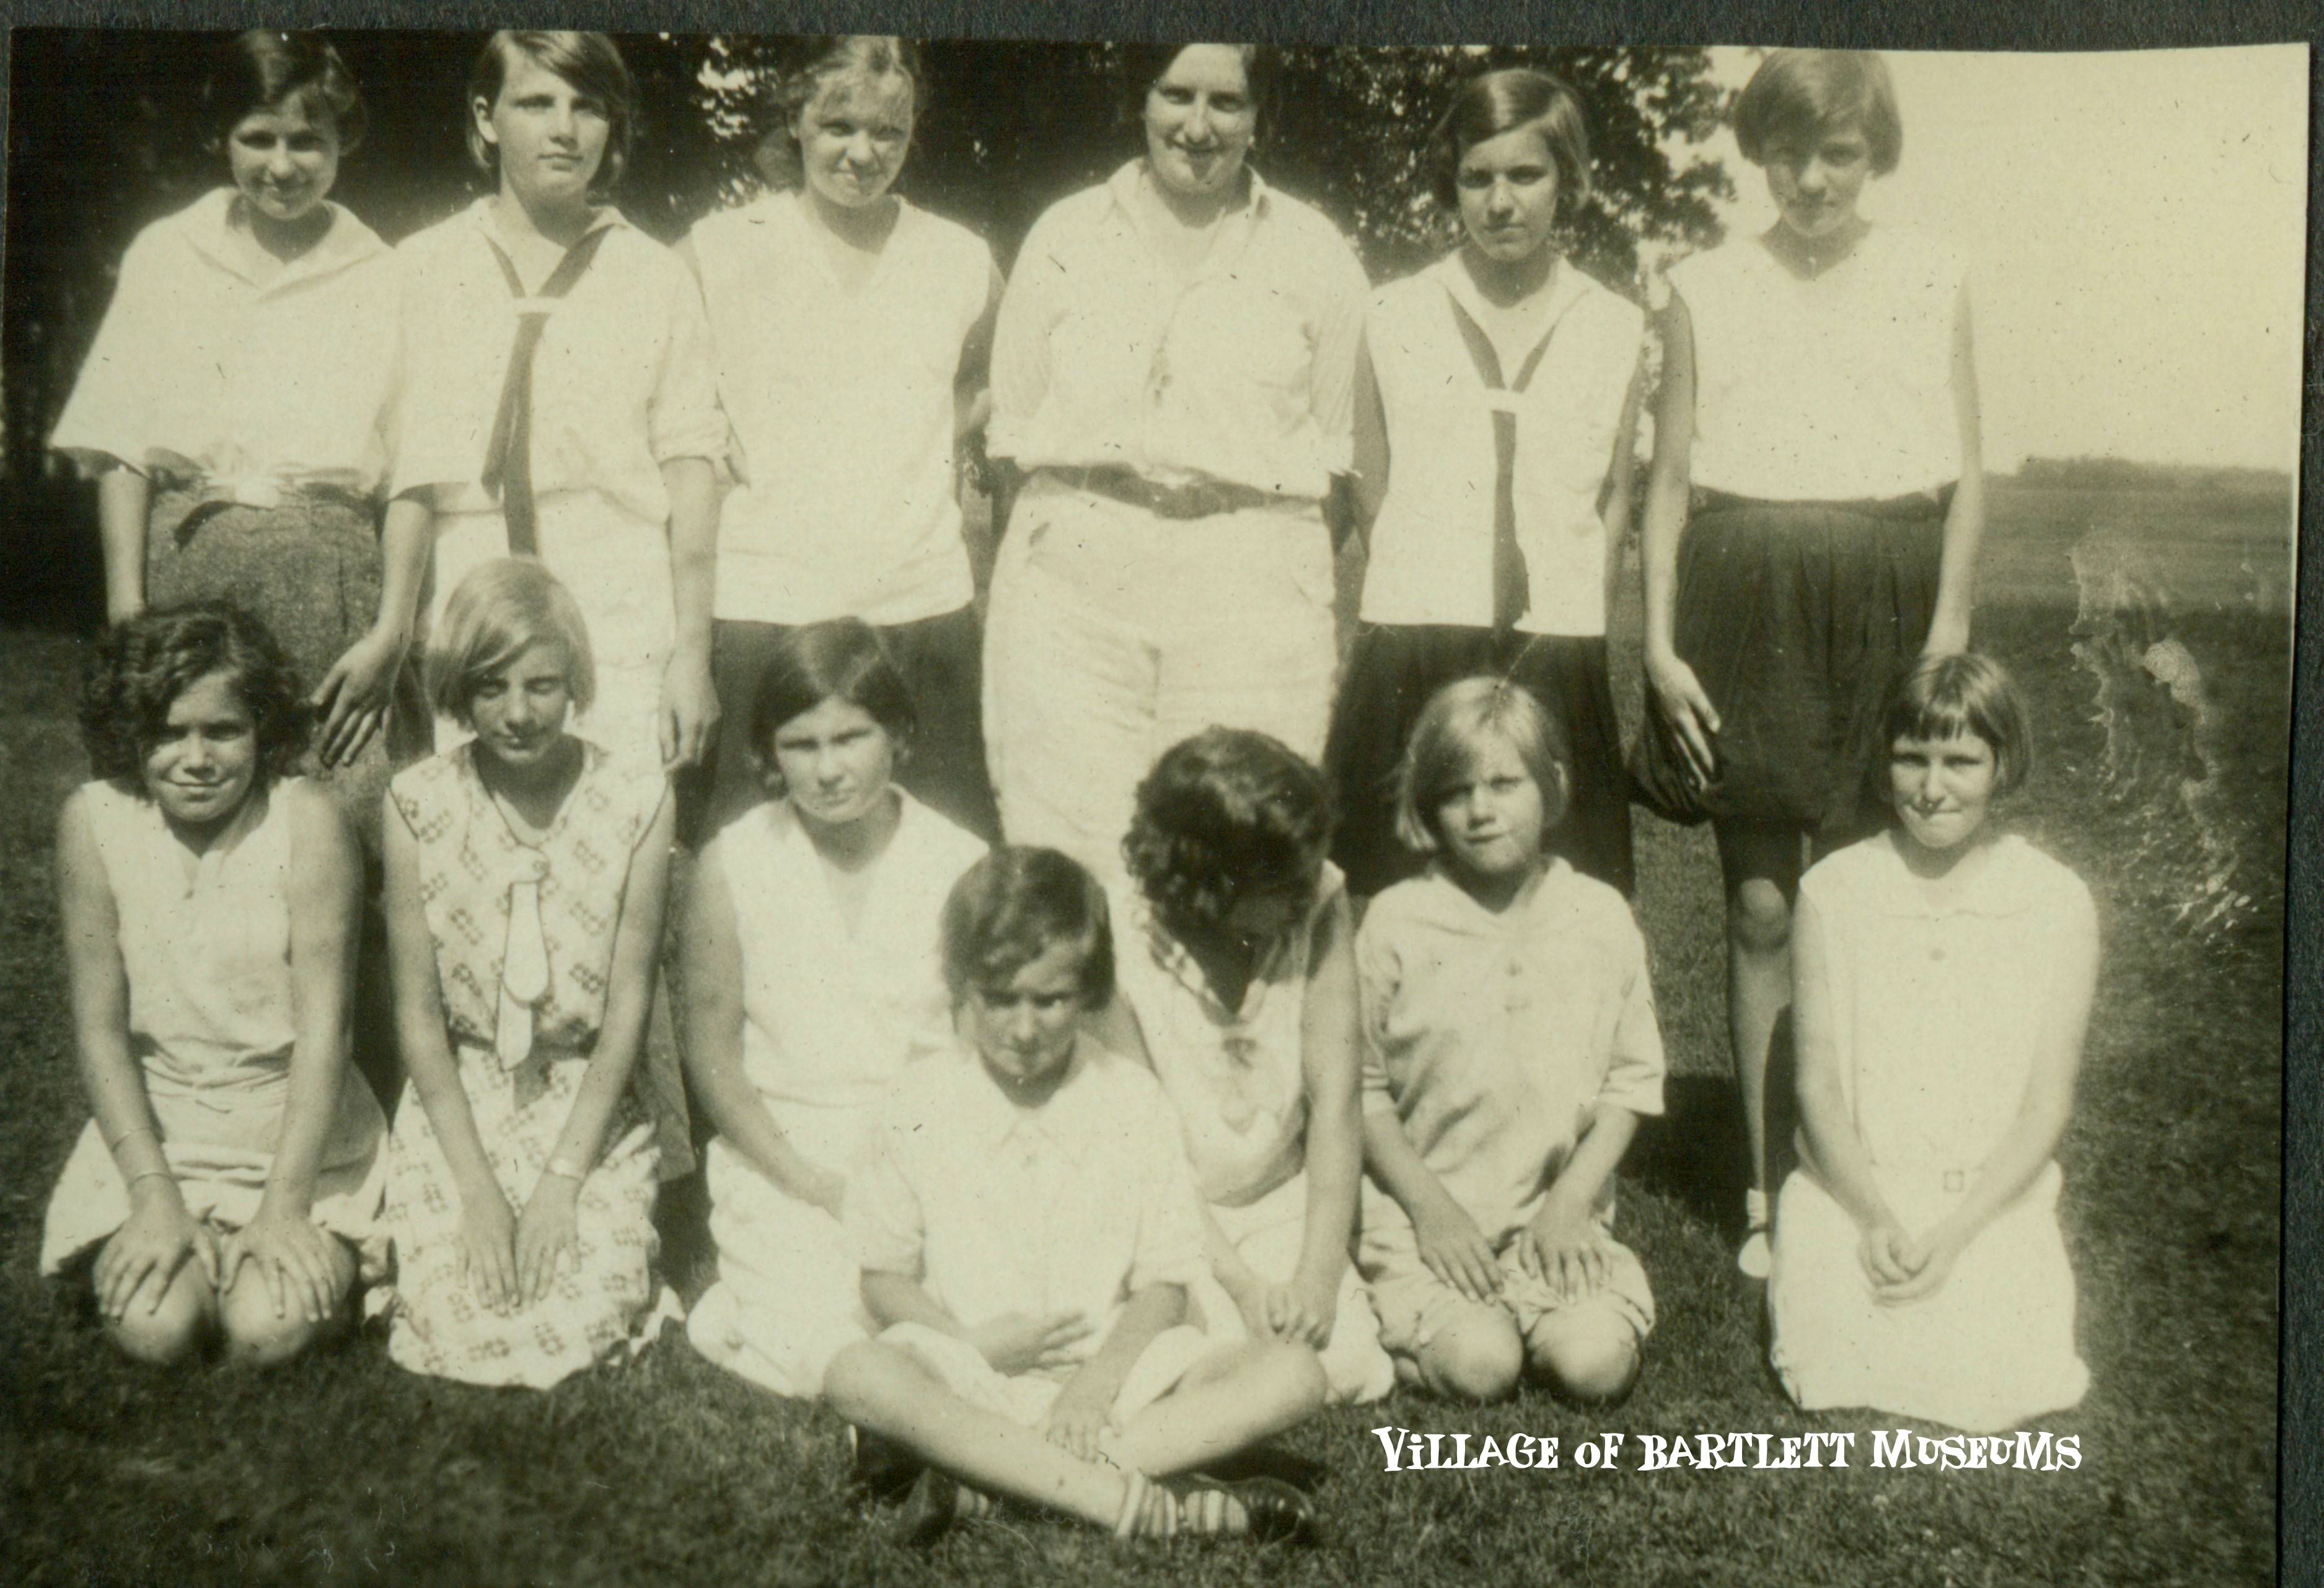 Girls Scouts were organized in Bartlett in 1929. The troop consisted of seven girls under the leadership of Estella Schnadt.    Several pages in Schnadt's personal photo album are devotes to pictures of her Bartlett Girl Scouts. This picture is identified as being taken in 1931 while the troops  was on a hike. Schnadt is in the back row third from right. Unfortunately none of the other scouts are identified in any of the images. Schnadt appreciated the outdoors and took her troop on numerous camping trips and other adventures that involved the great outdoors.